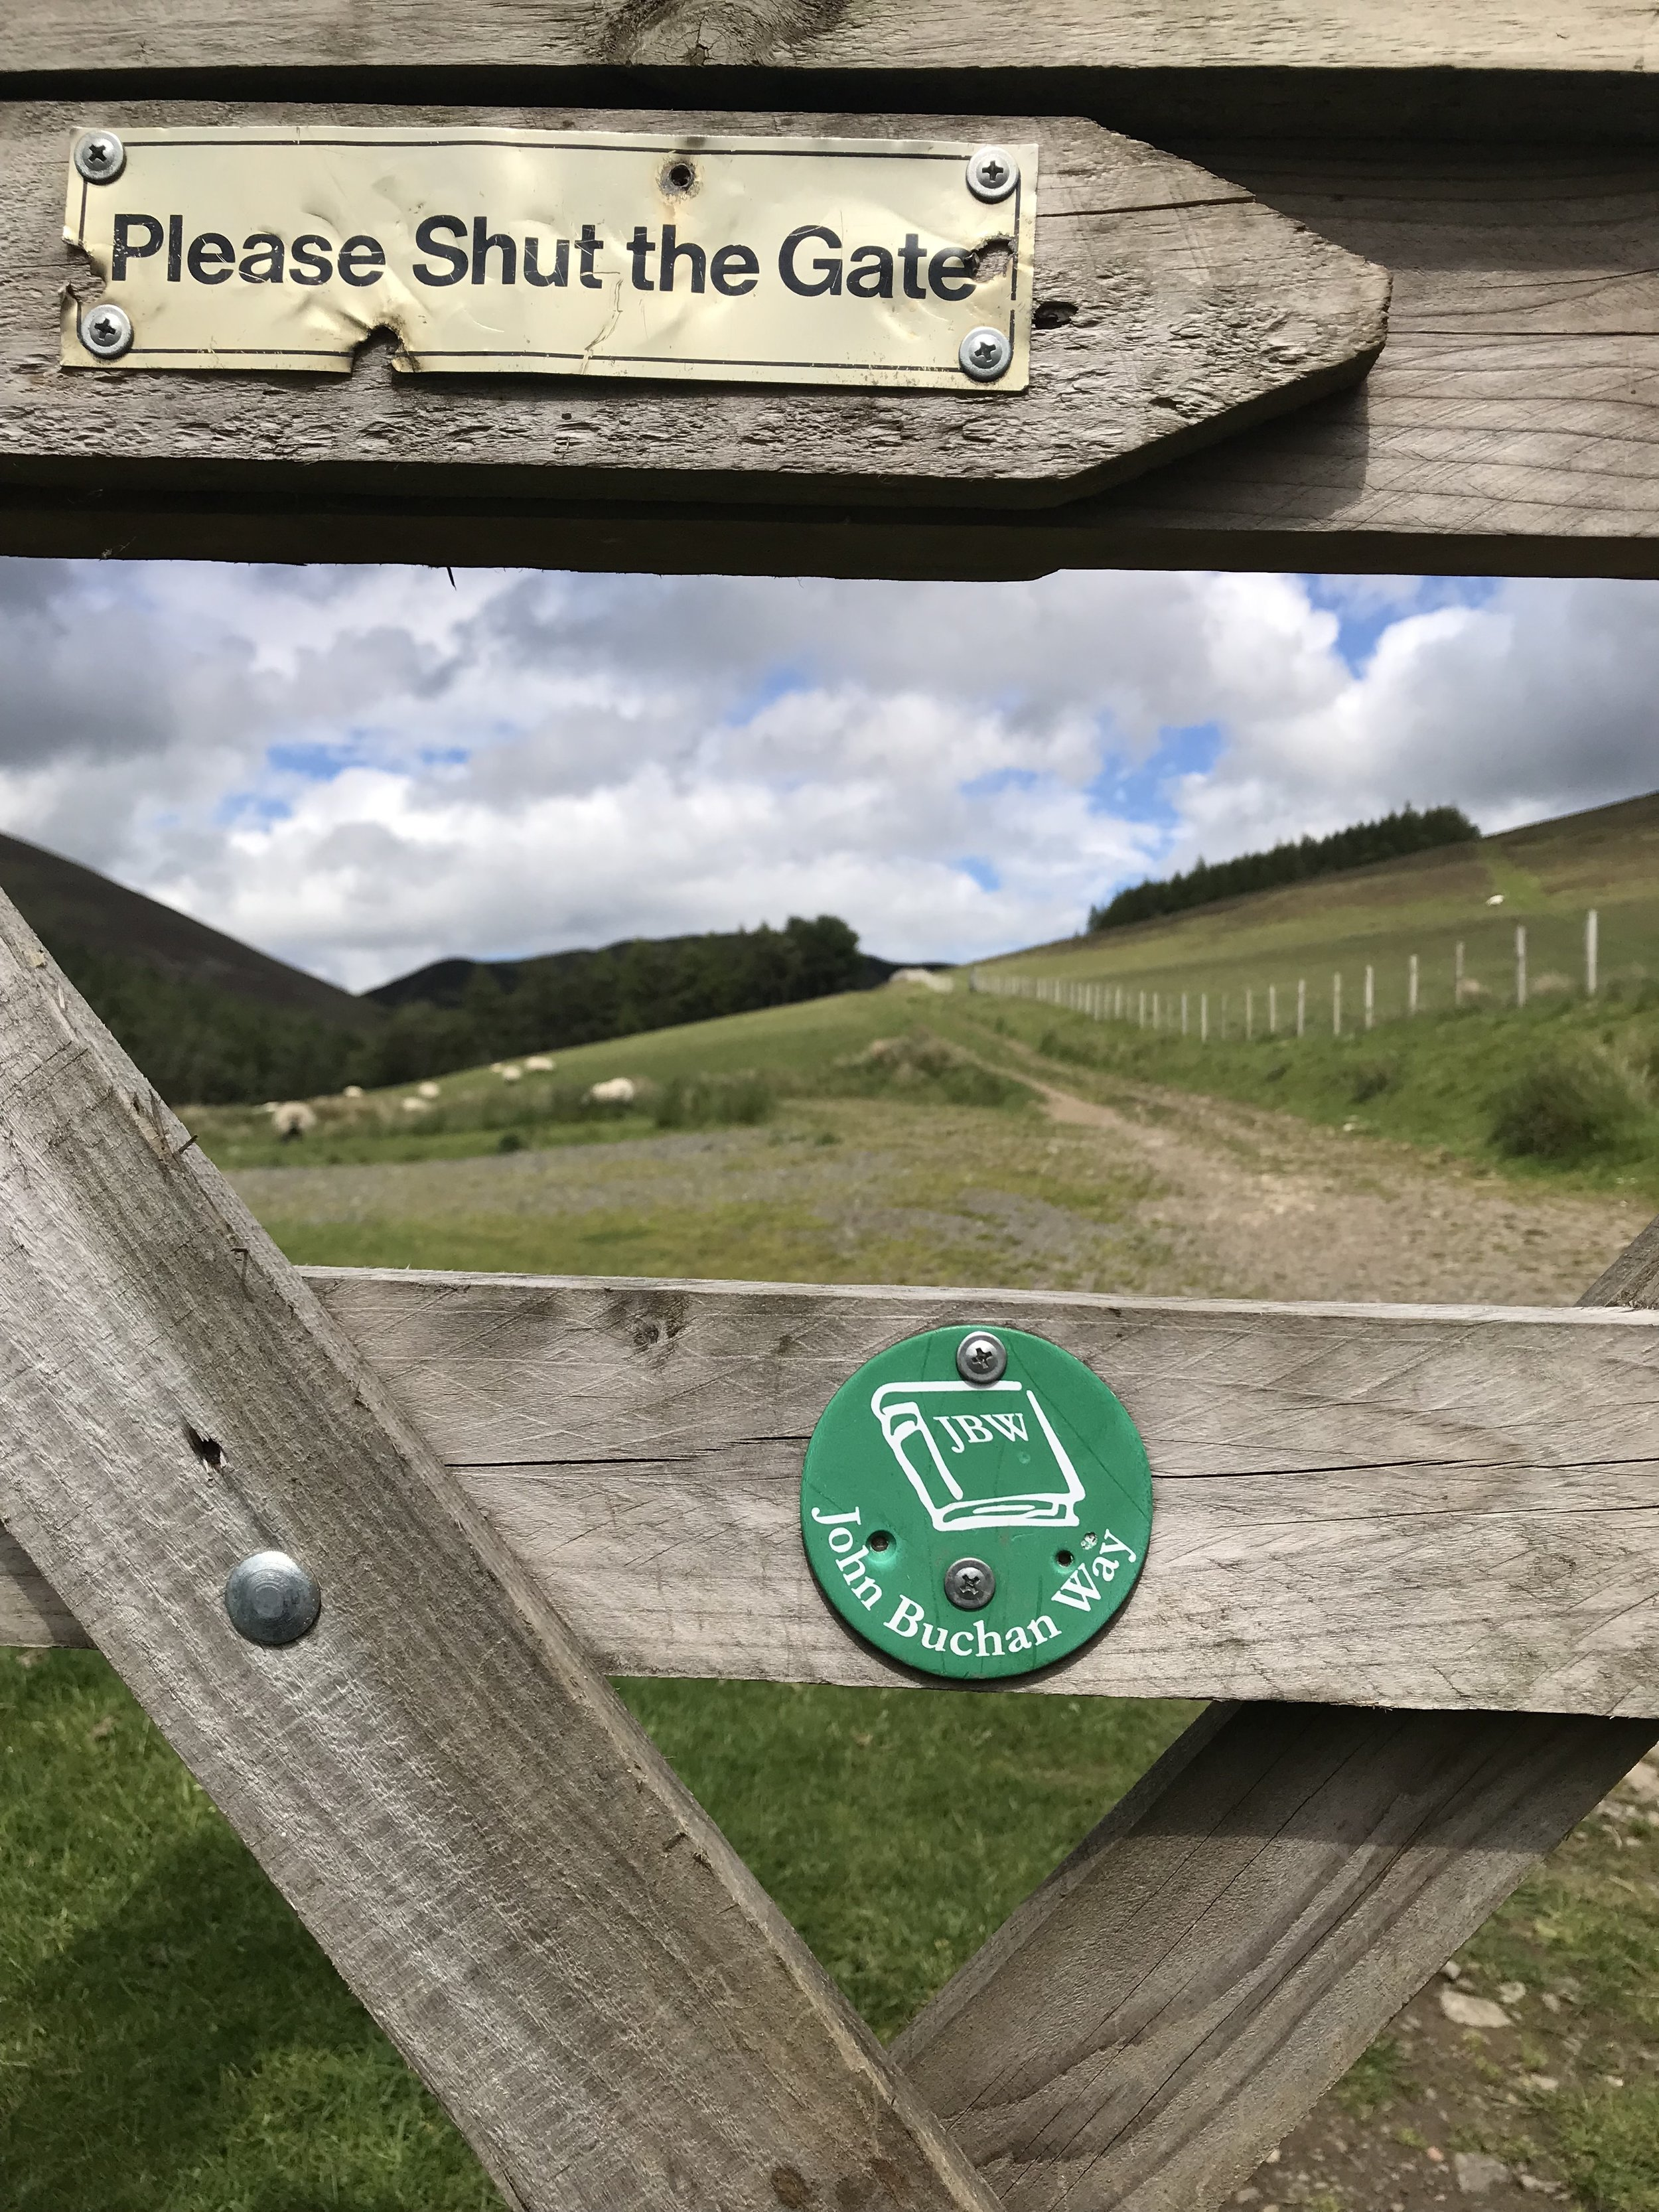 The John Buchan Way   Walking Opportunities Galore…